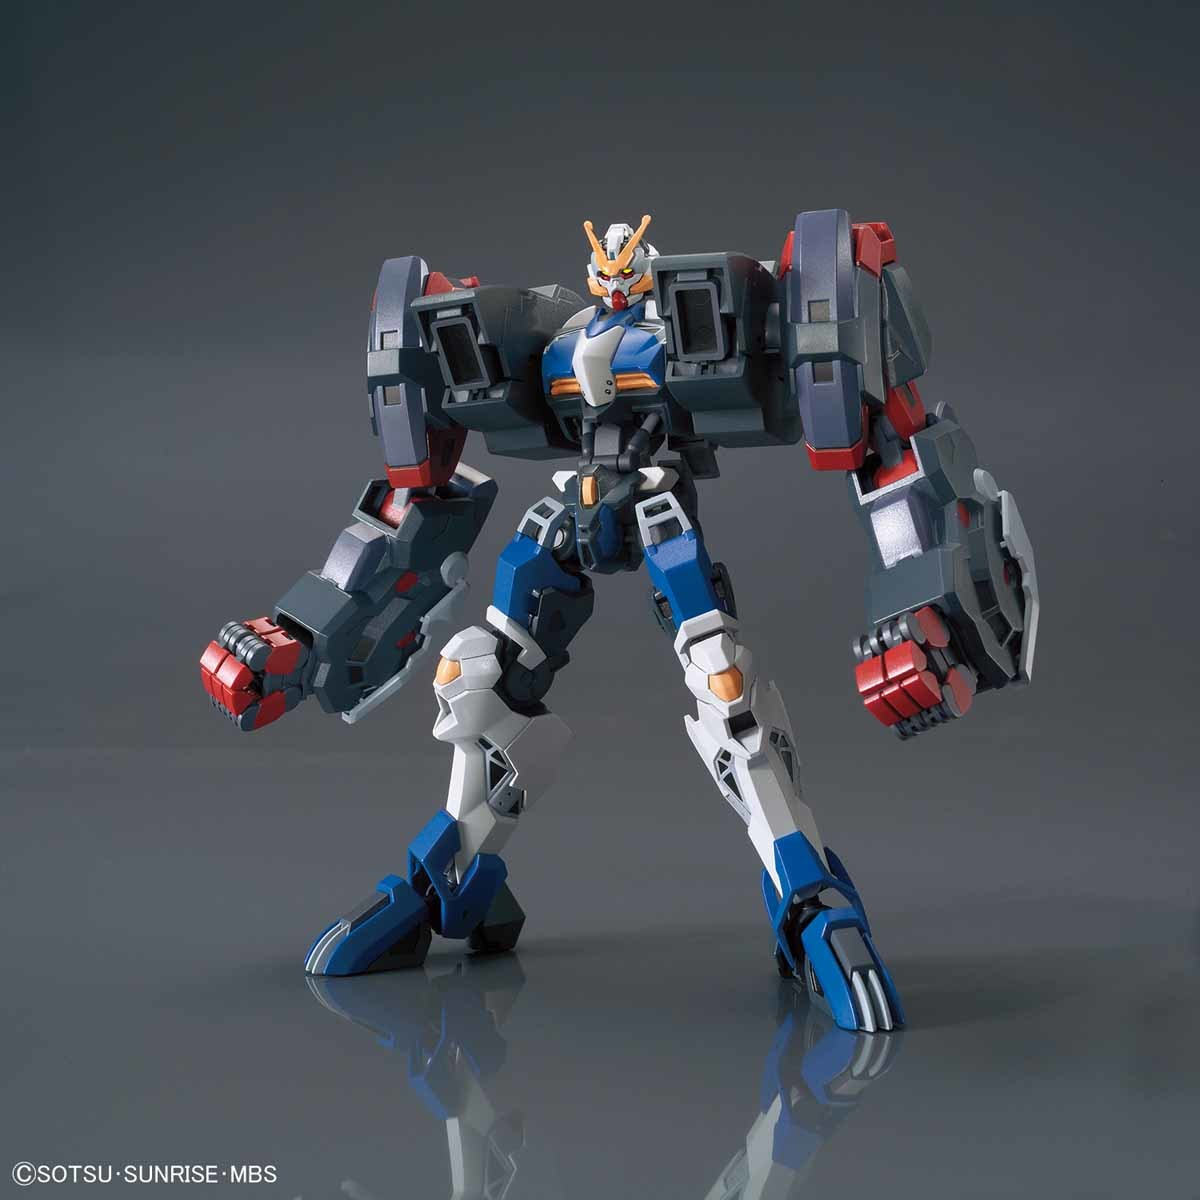 HG IBO 1144 GUNDAM DANTALION Just Added No25 Big Size Images Almost a REVIEW info